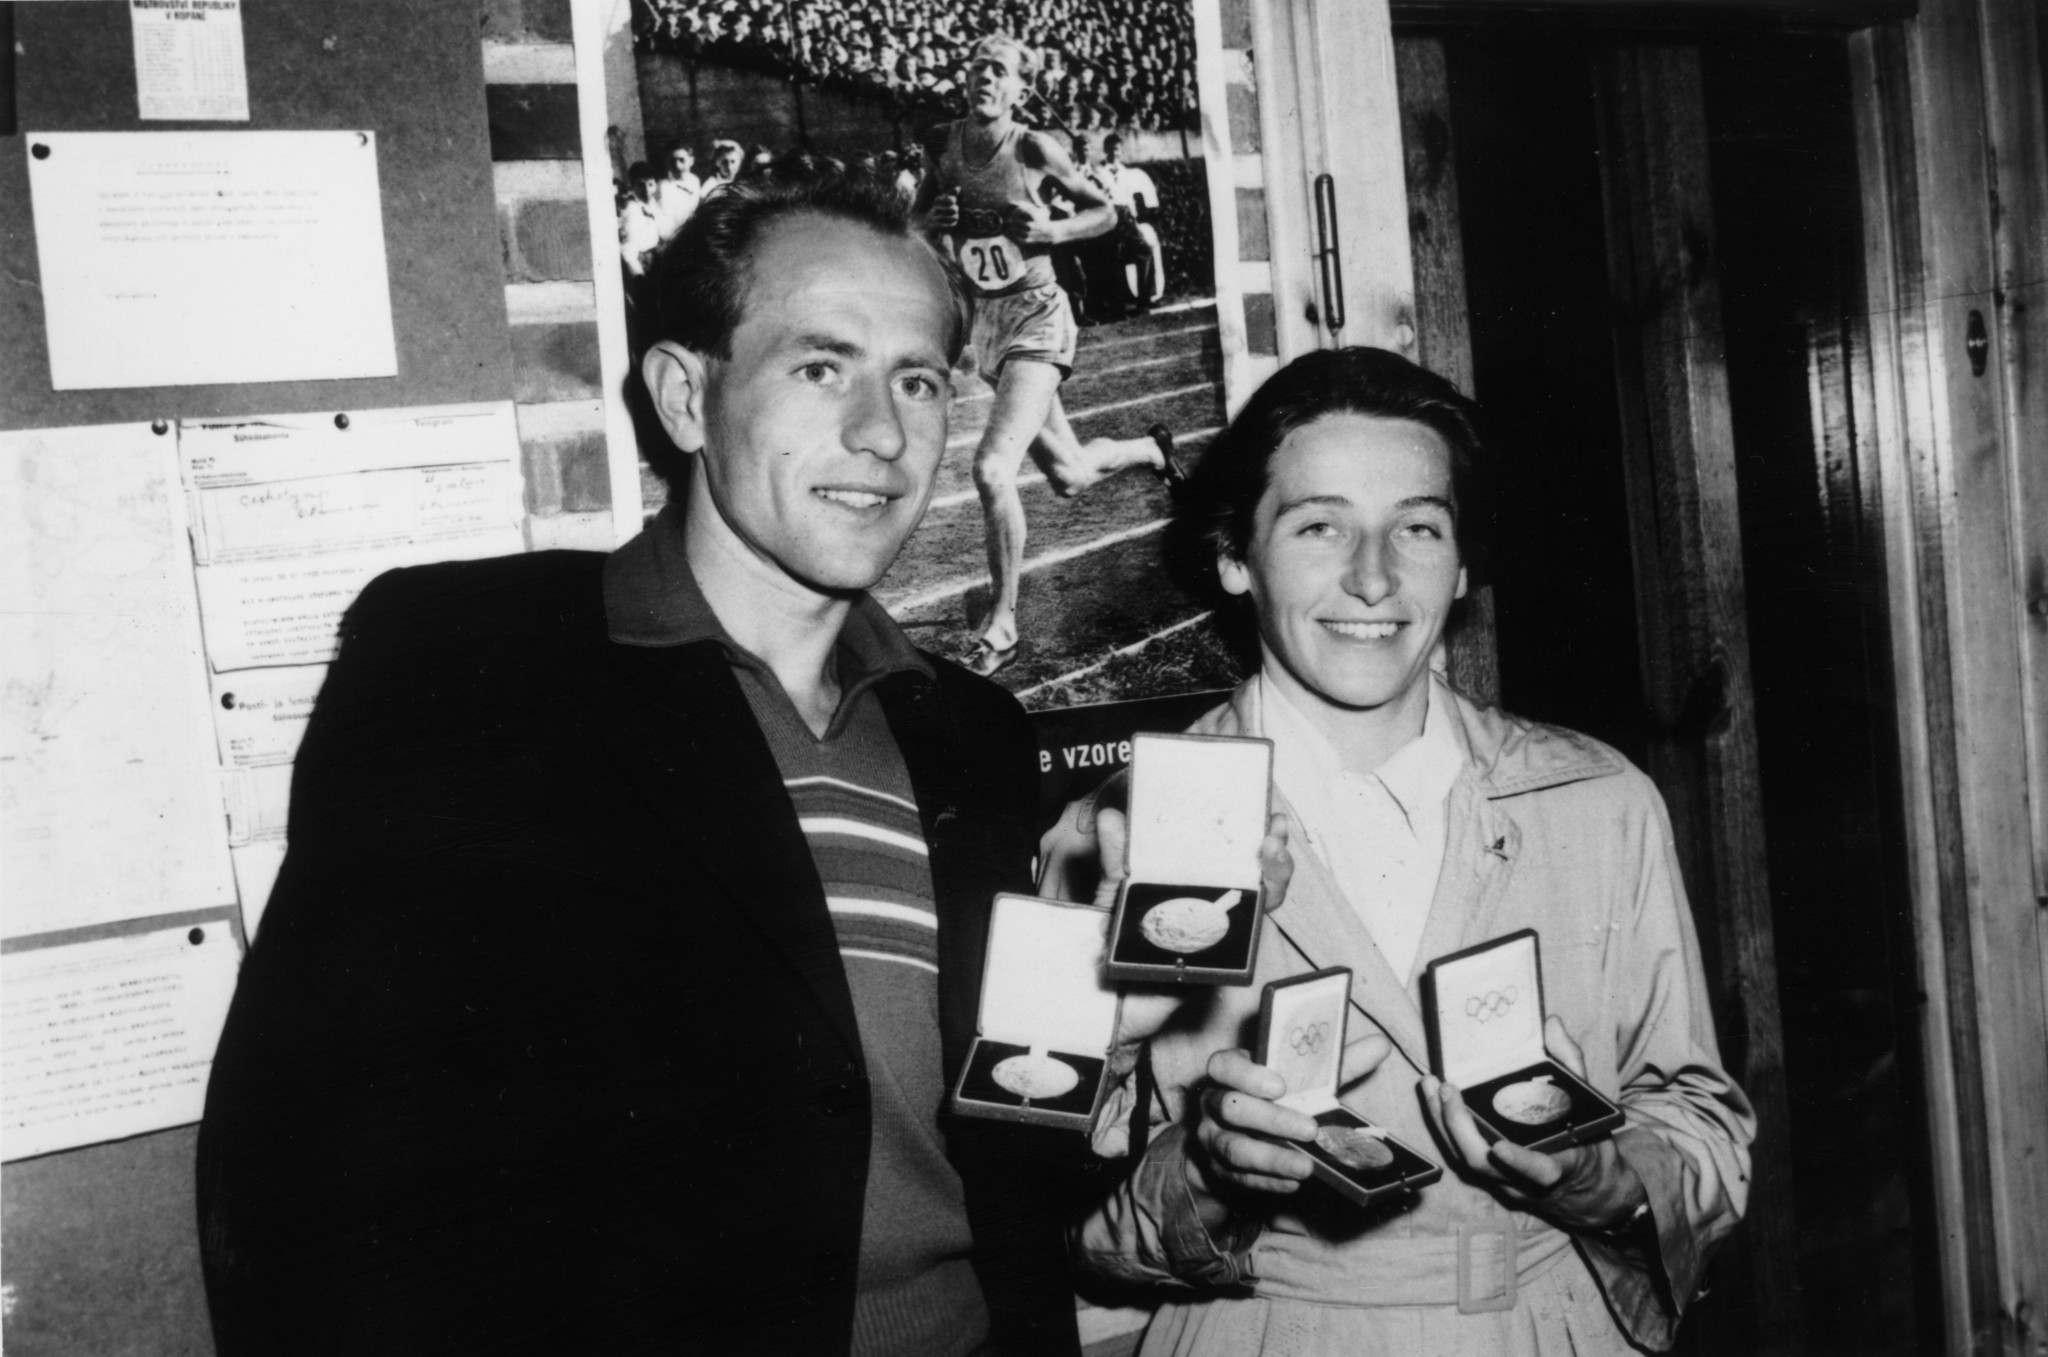 Husband and wife show off their medals in 1952 ©Getty Images